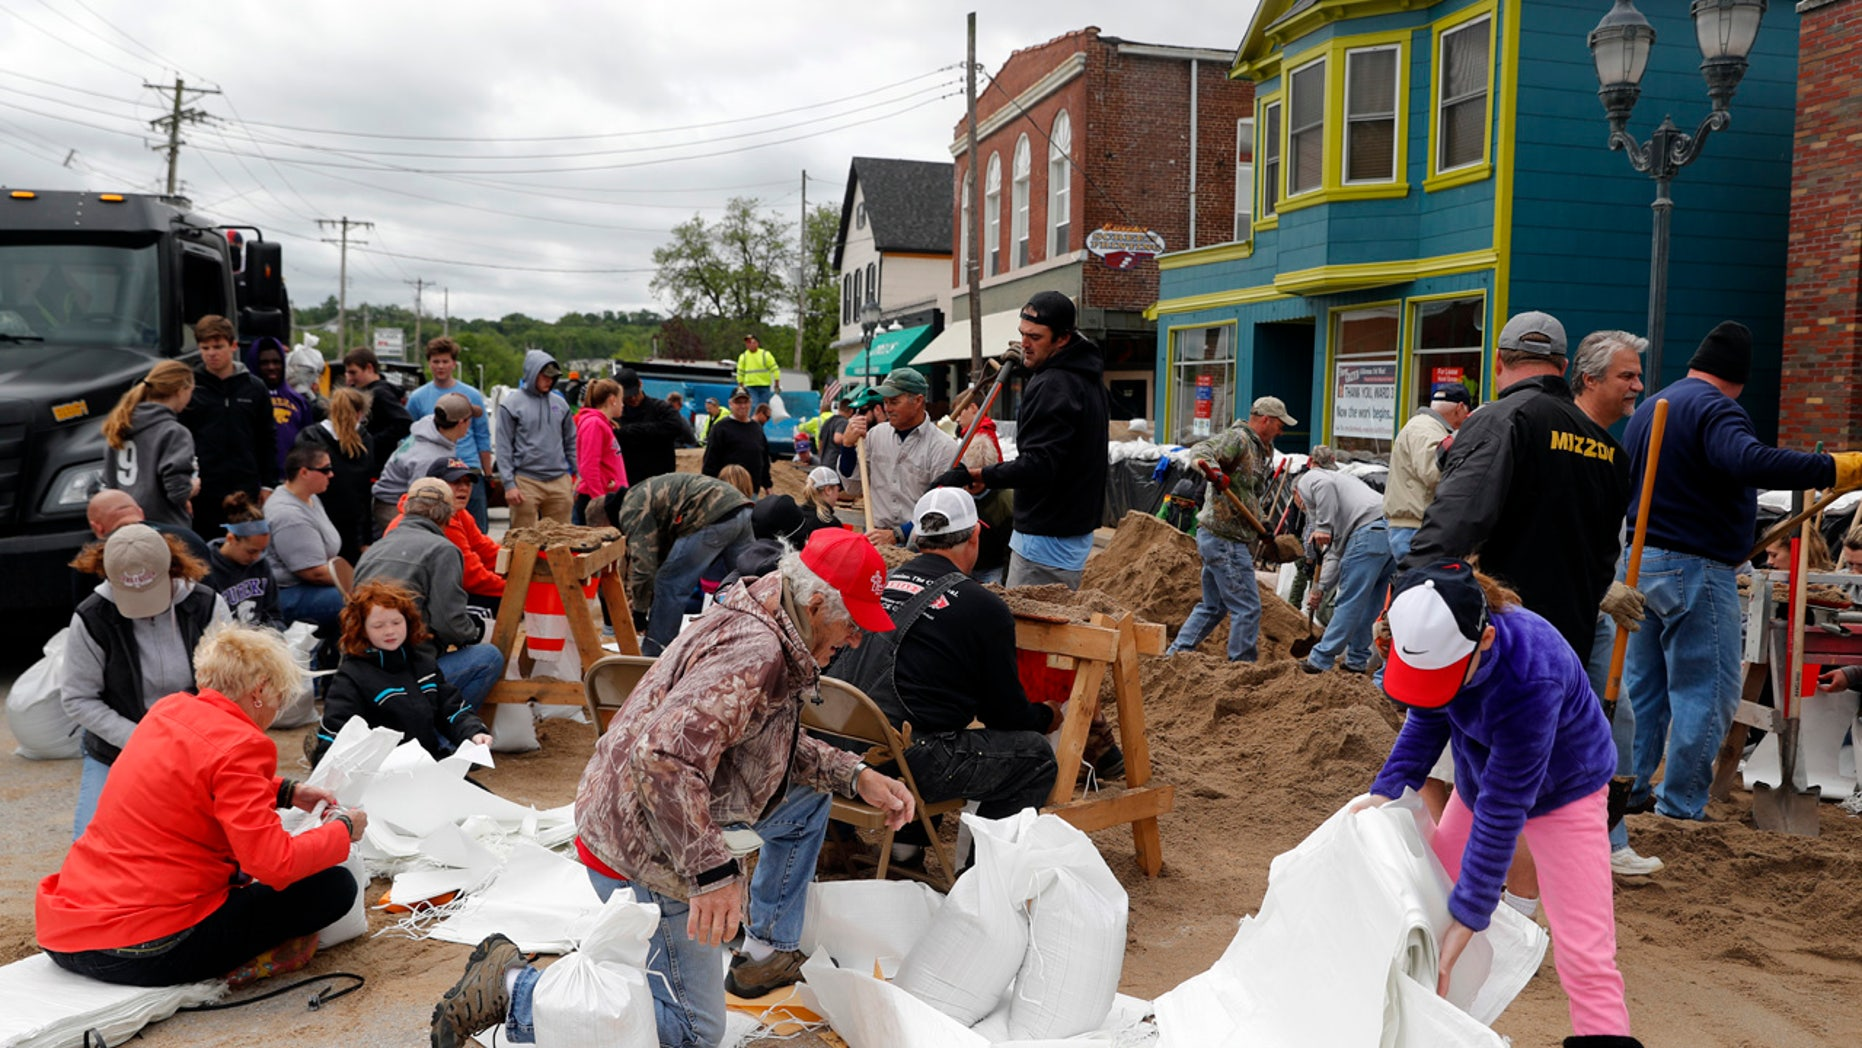 Volunteers fill sandbags in an effort to protect buildings from potential floodwater Monday, May 1, 2017, in Eureka, Mo.